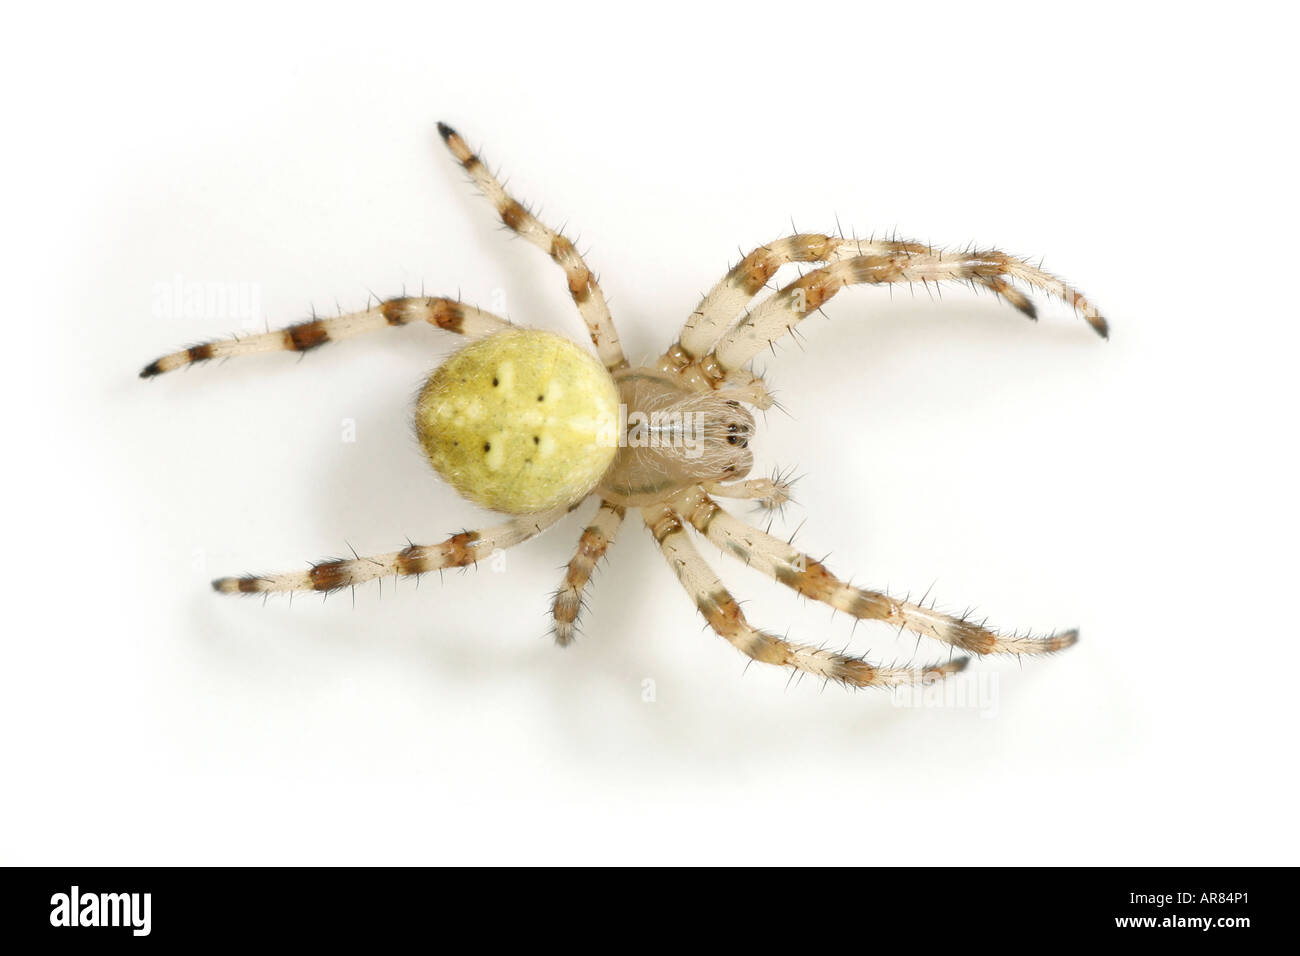 Araneus Quadratus spider on white backgroundStock Photo